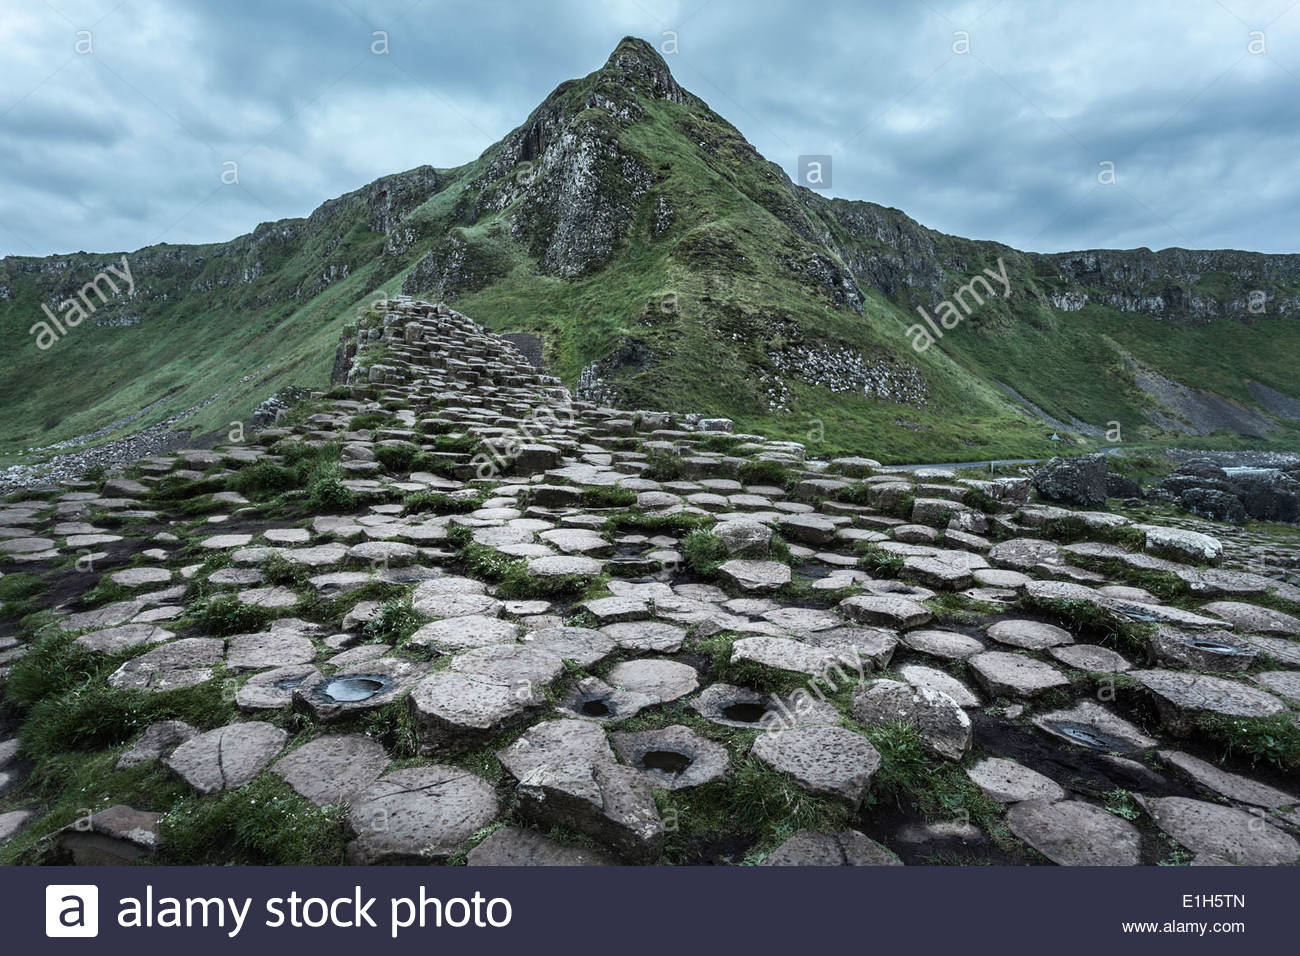 Giants Causeway, Bushmills, County Antrim, Northern Ireland, UK - Stock Image